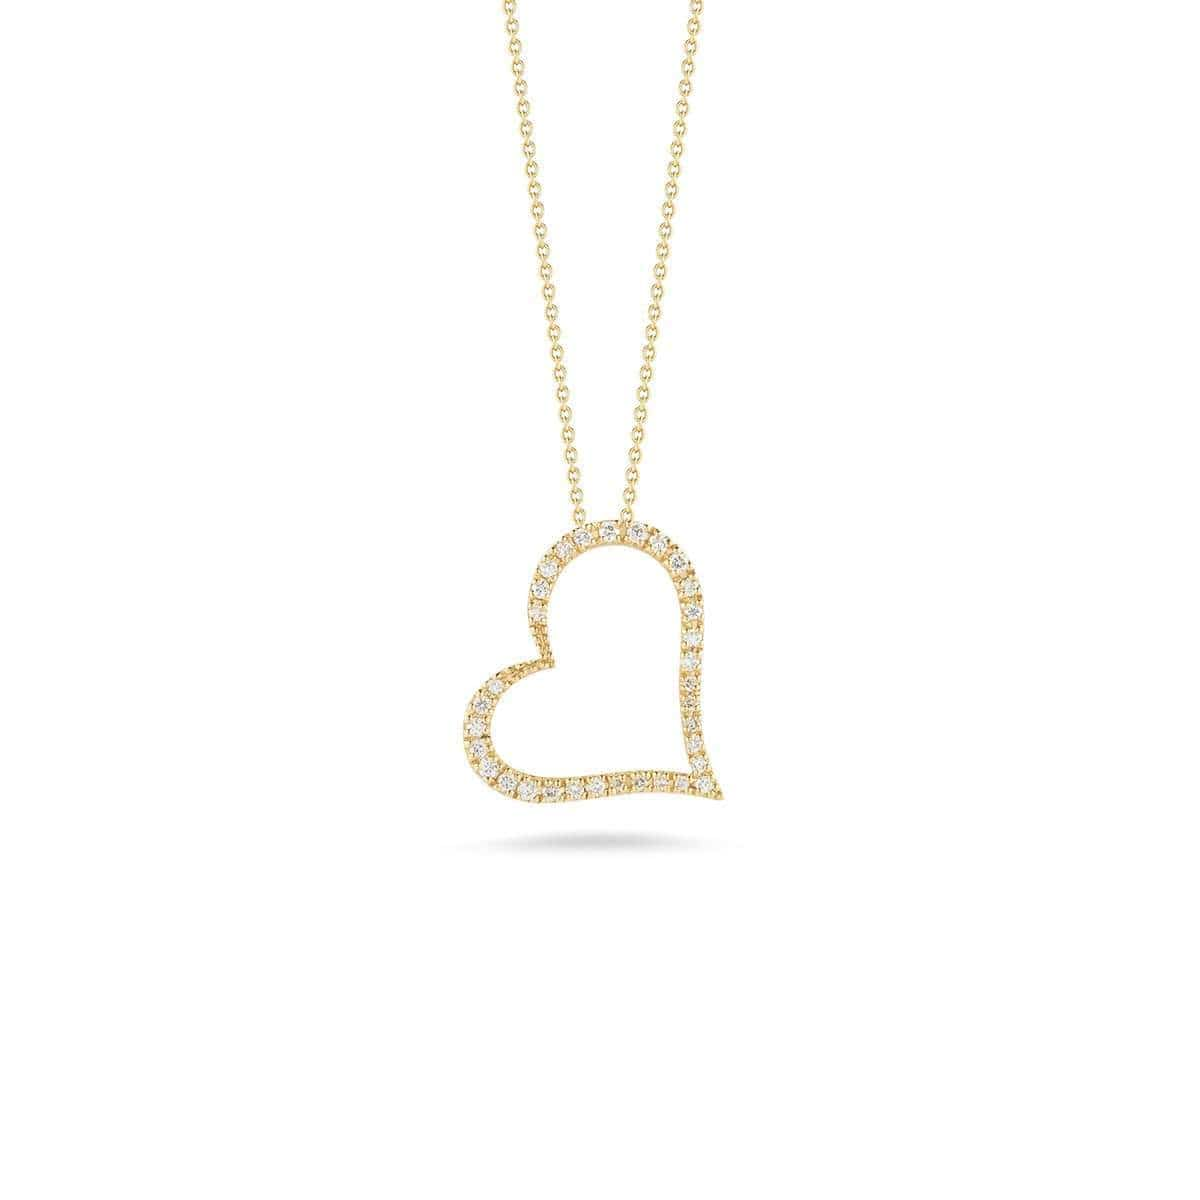 18k Yellow Gold & Diamond Slanted Open Heart Necklace - 001443AYCHX0-Roberto Coin-Renee Taylor Gallery